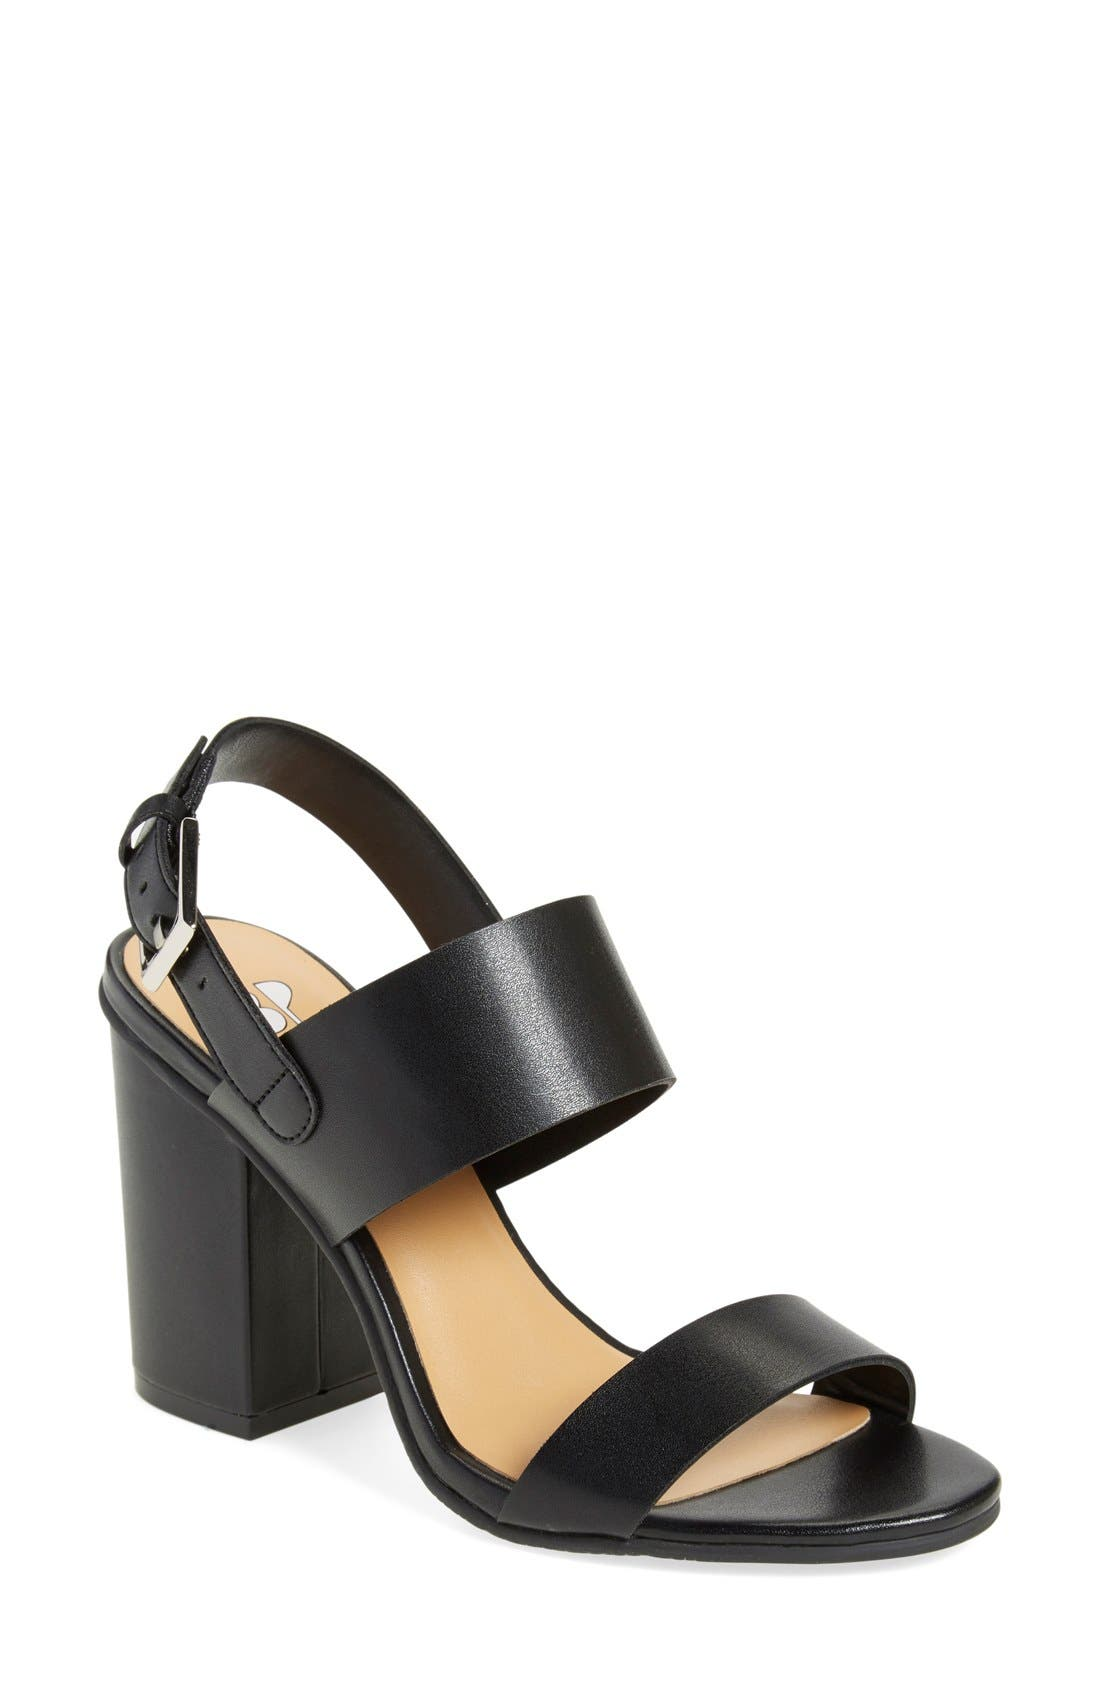 Alternate Image 1 Selected - BP. 'Truce City' Block Heel Sandal (Women)